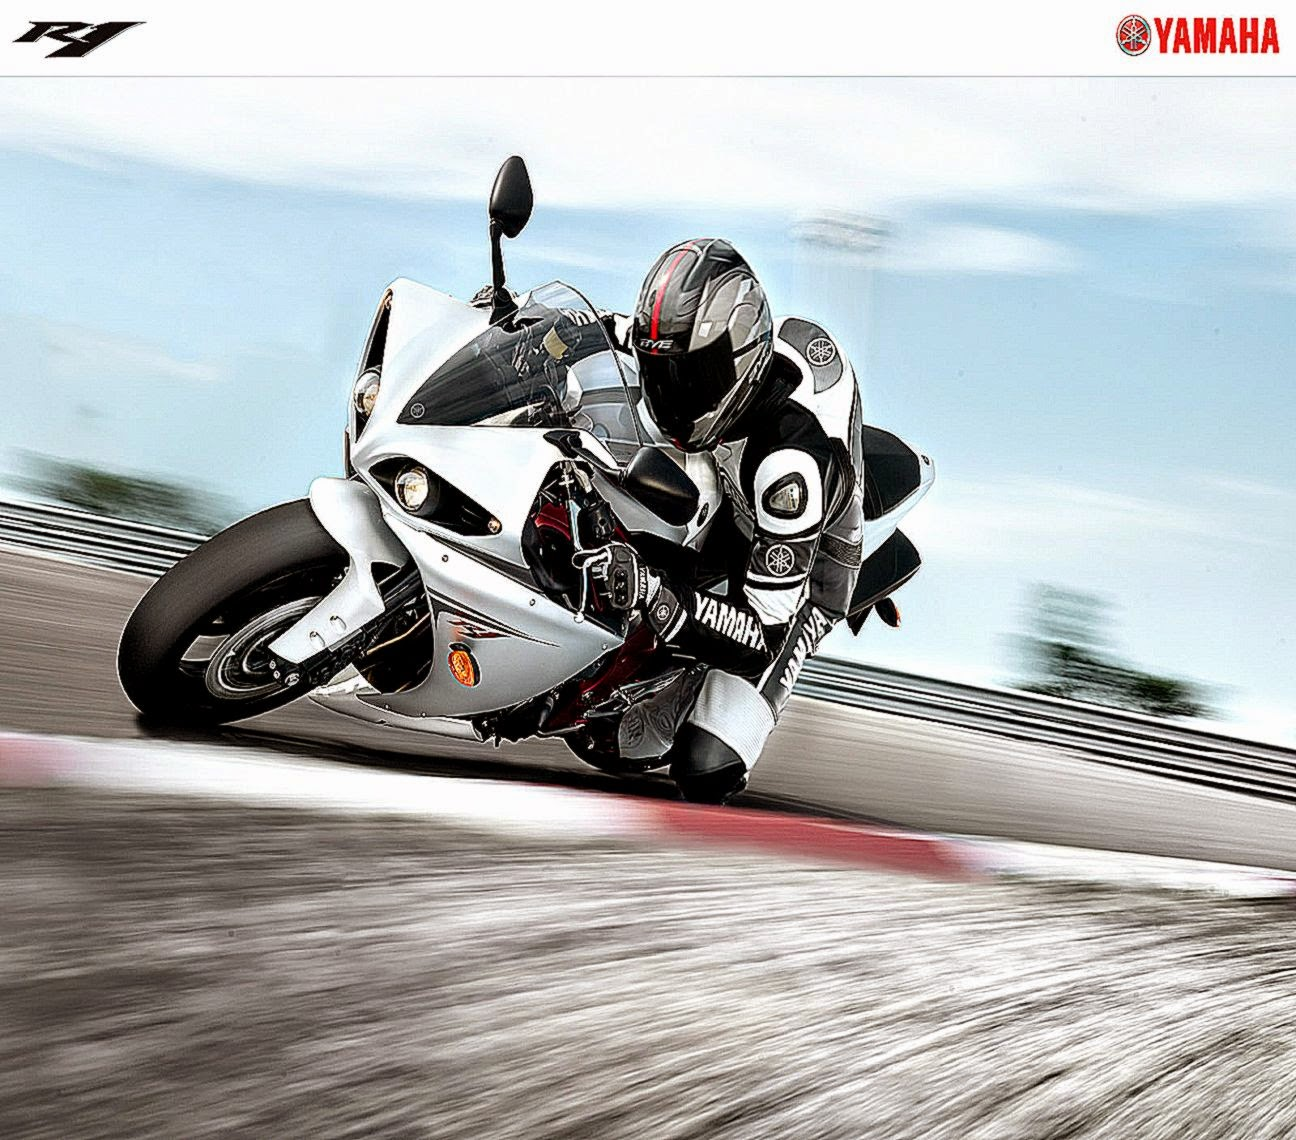 HD Yamaha Wallpaper amp Background Images For Download